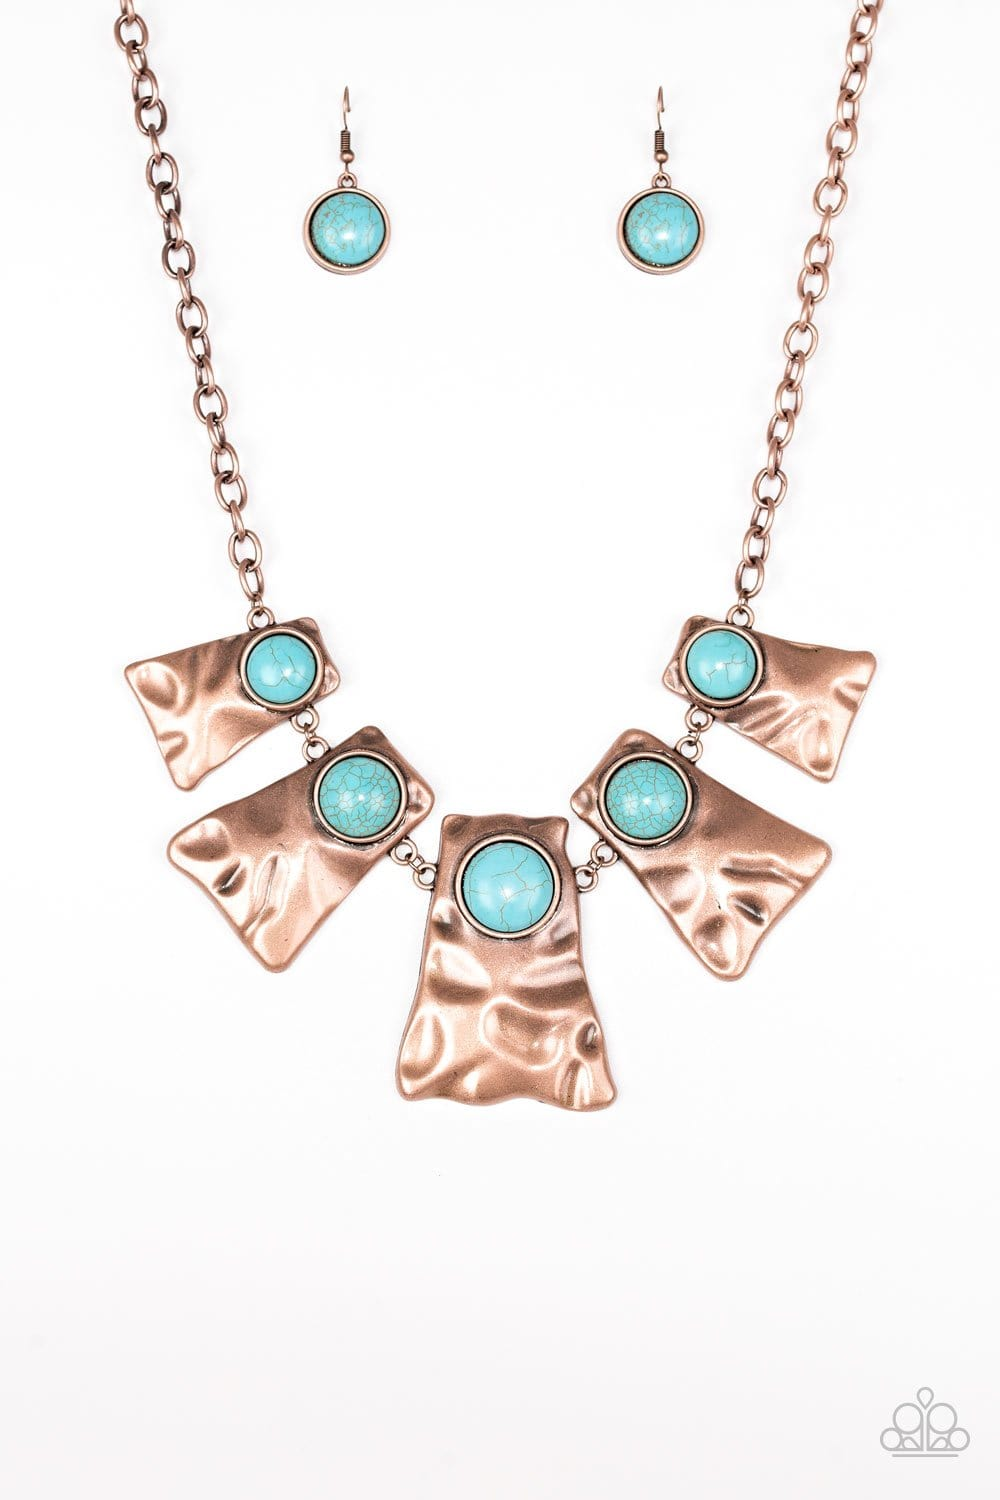 Cougar - Copper - Jewels N' Thingz Boutique